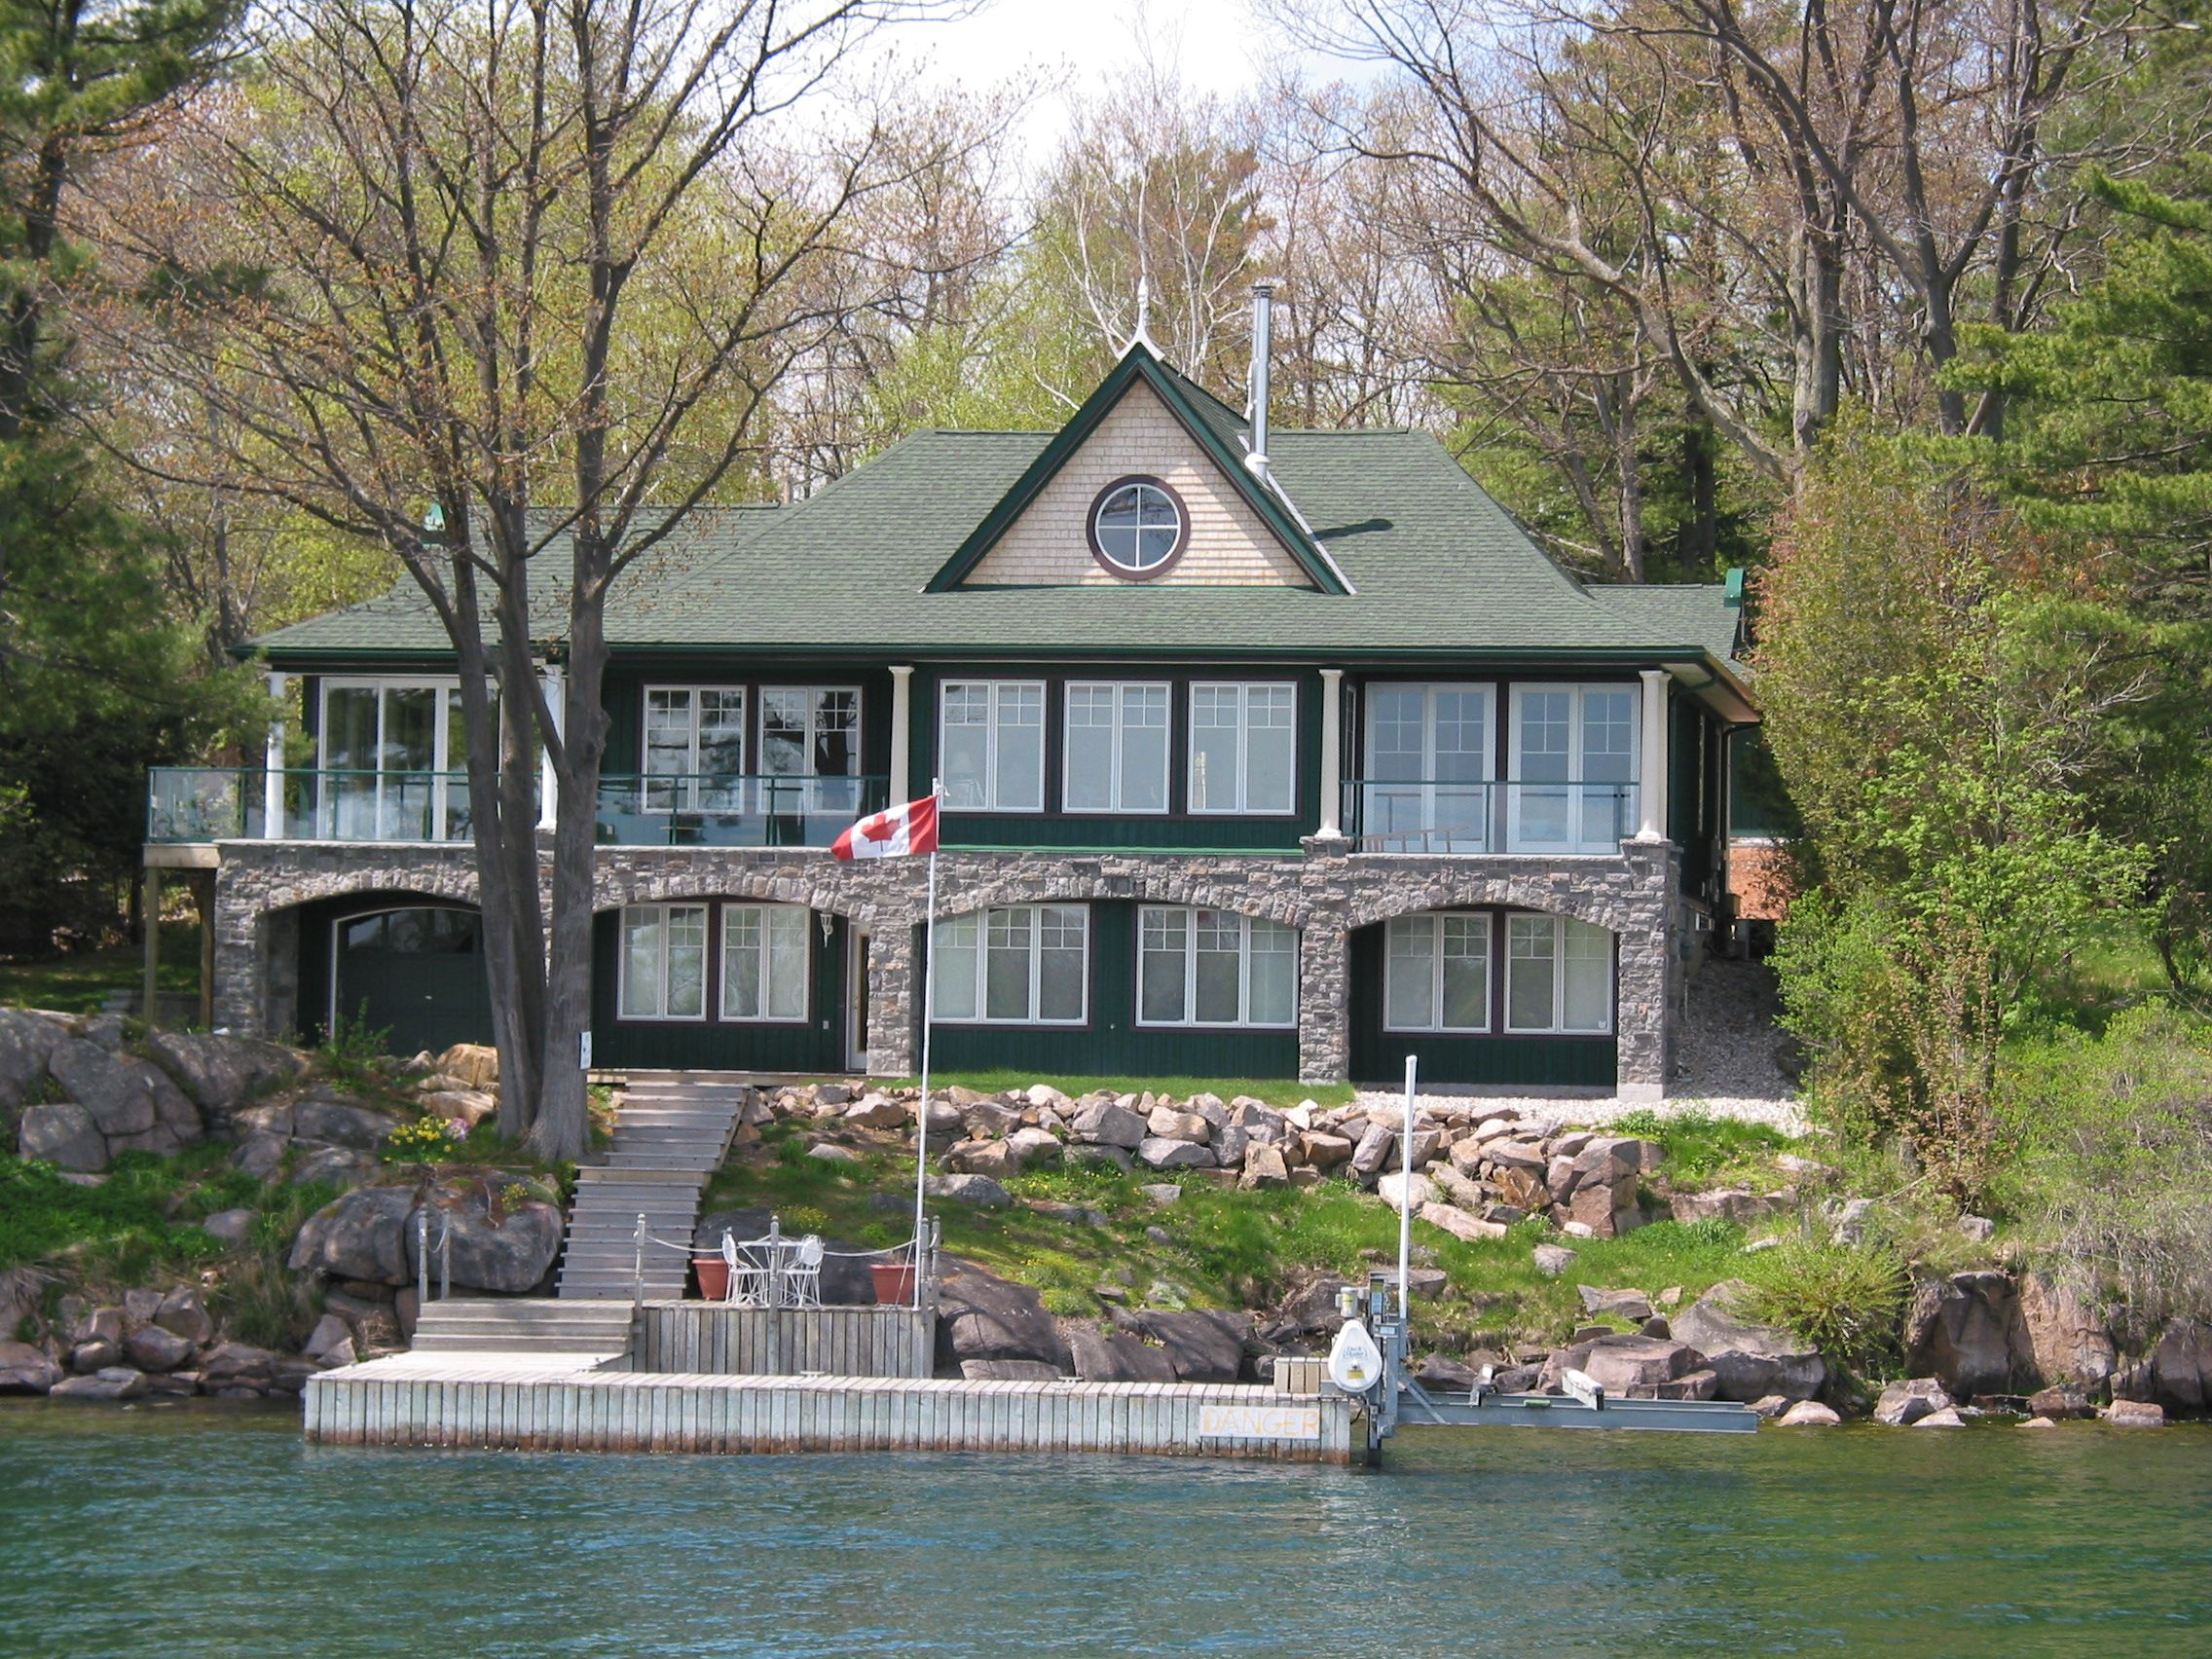 The Ideal Environment Portfolio - Cottage Design View from Water